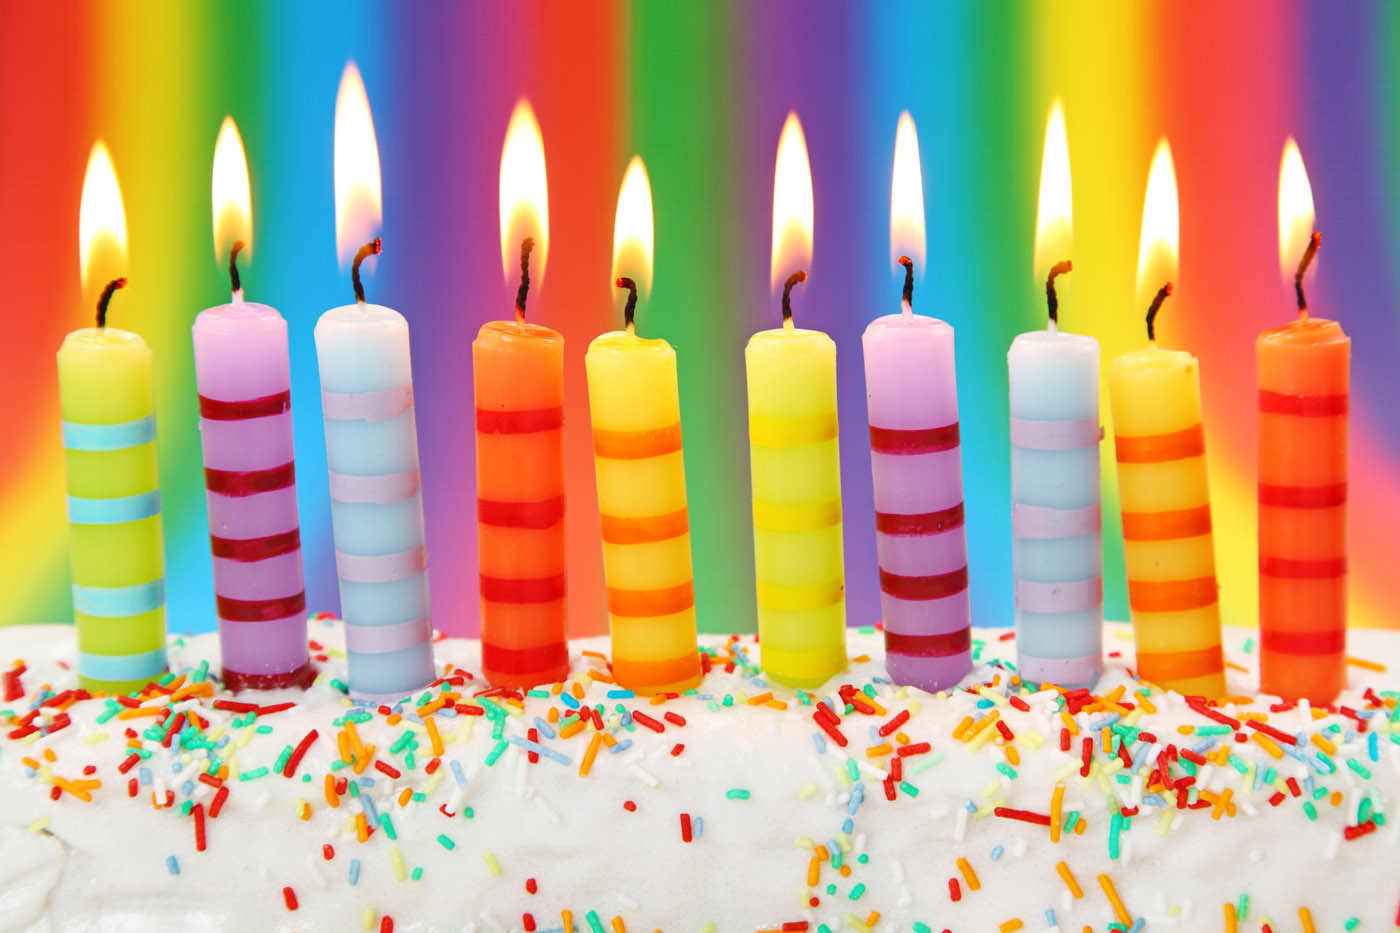 Birthday candles wallpaper hd